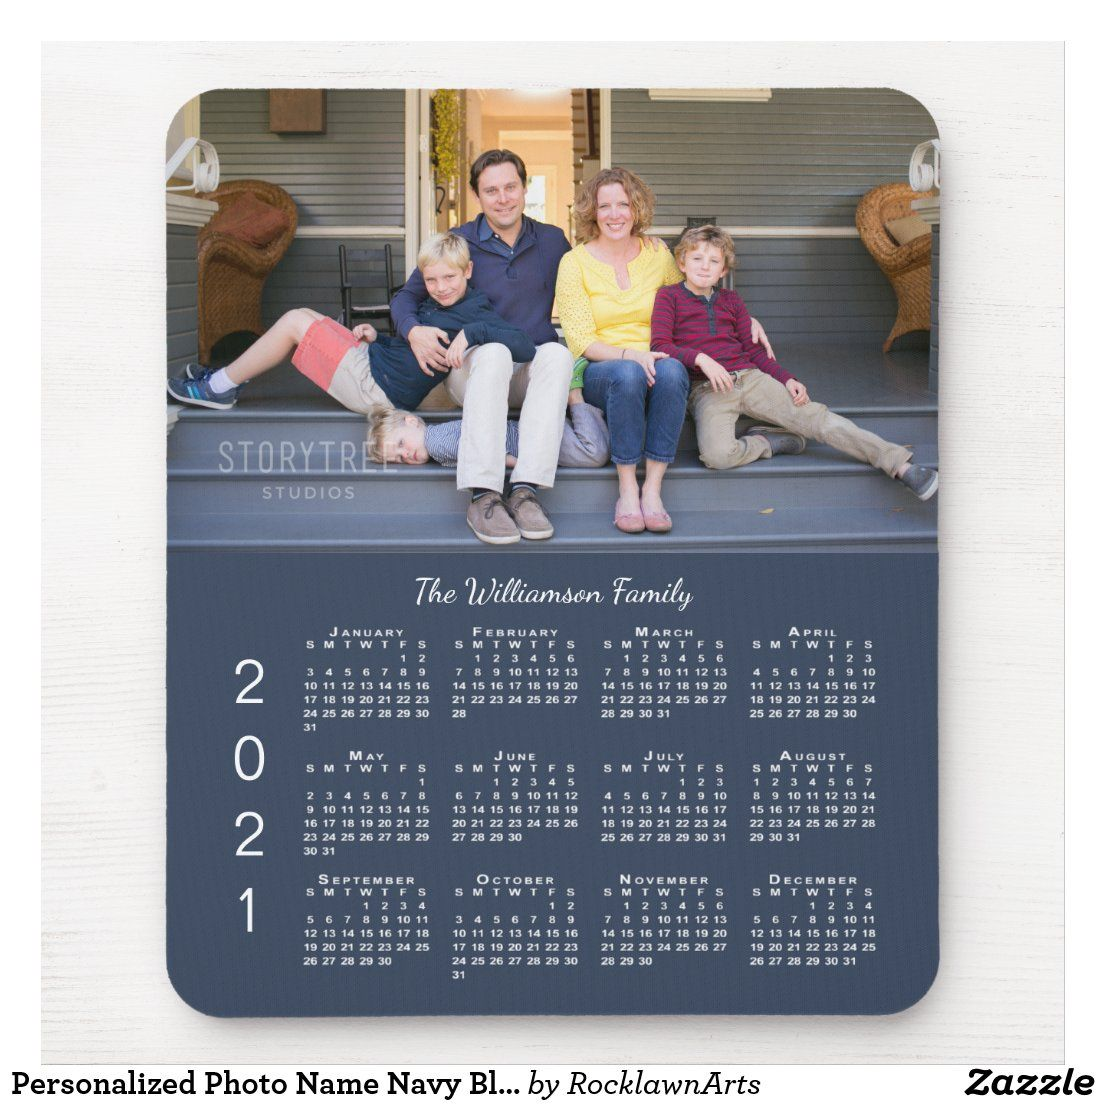 Personalized photo name navy blue 2021 calendar mouse pad